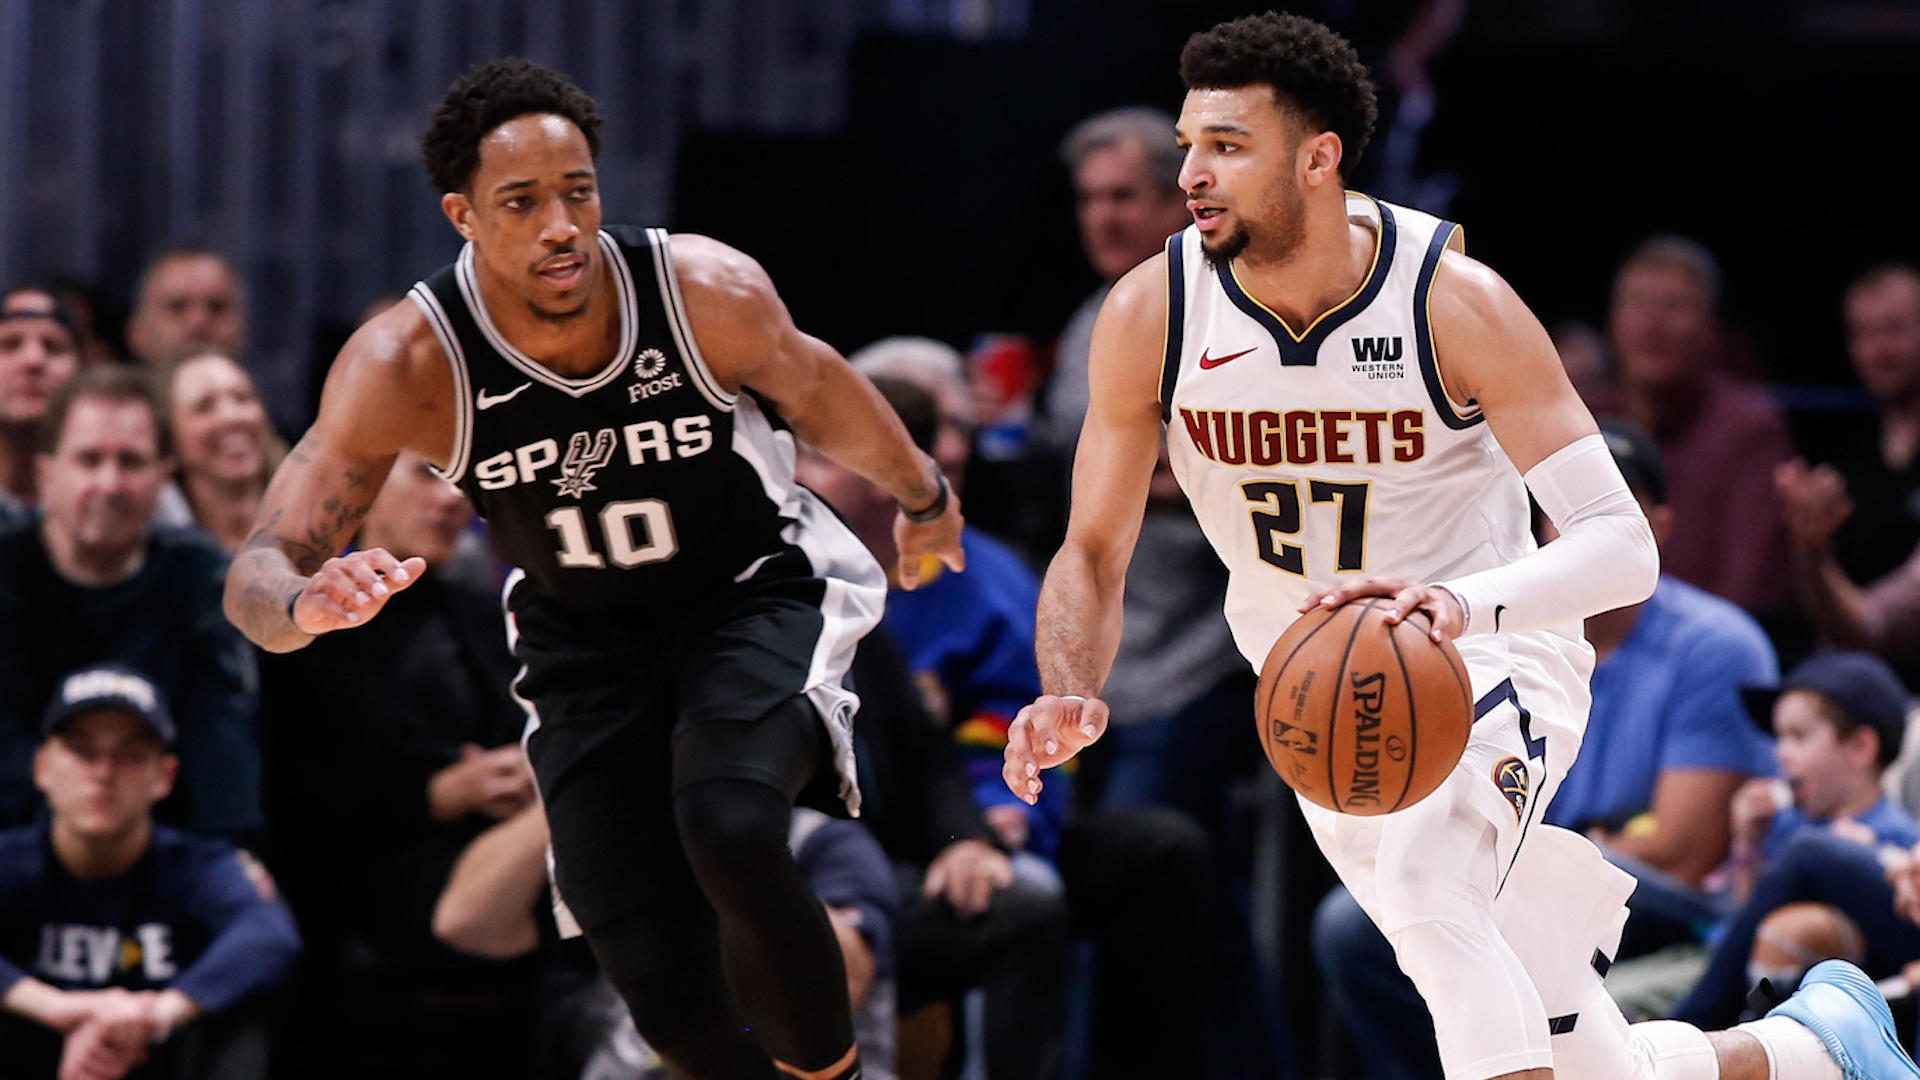 2019 NBA Playoffs: Watch Spurs vs. Nuggets Game 3, series schedule, results, TV channel, live stream, odds, matchups